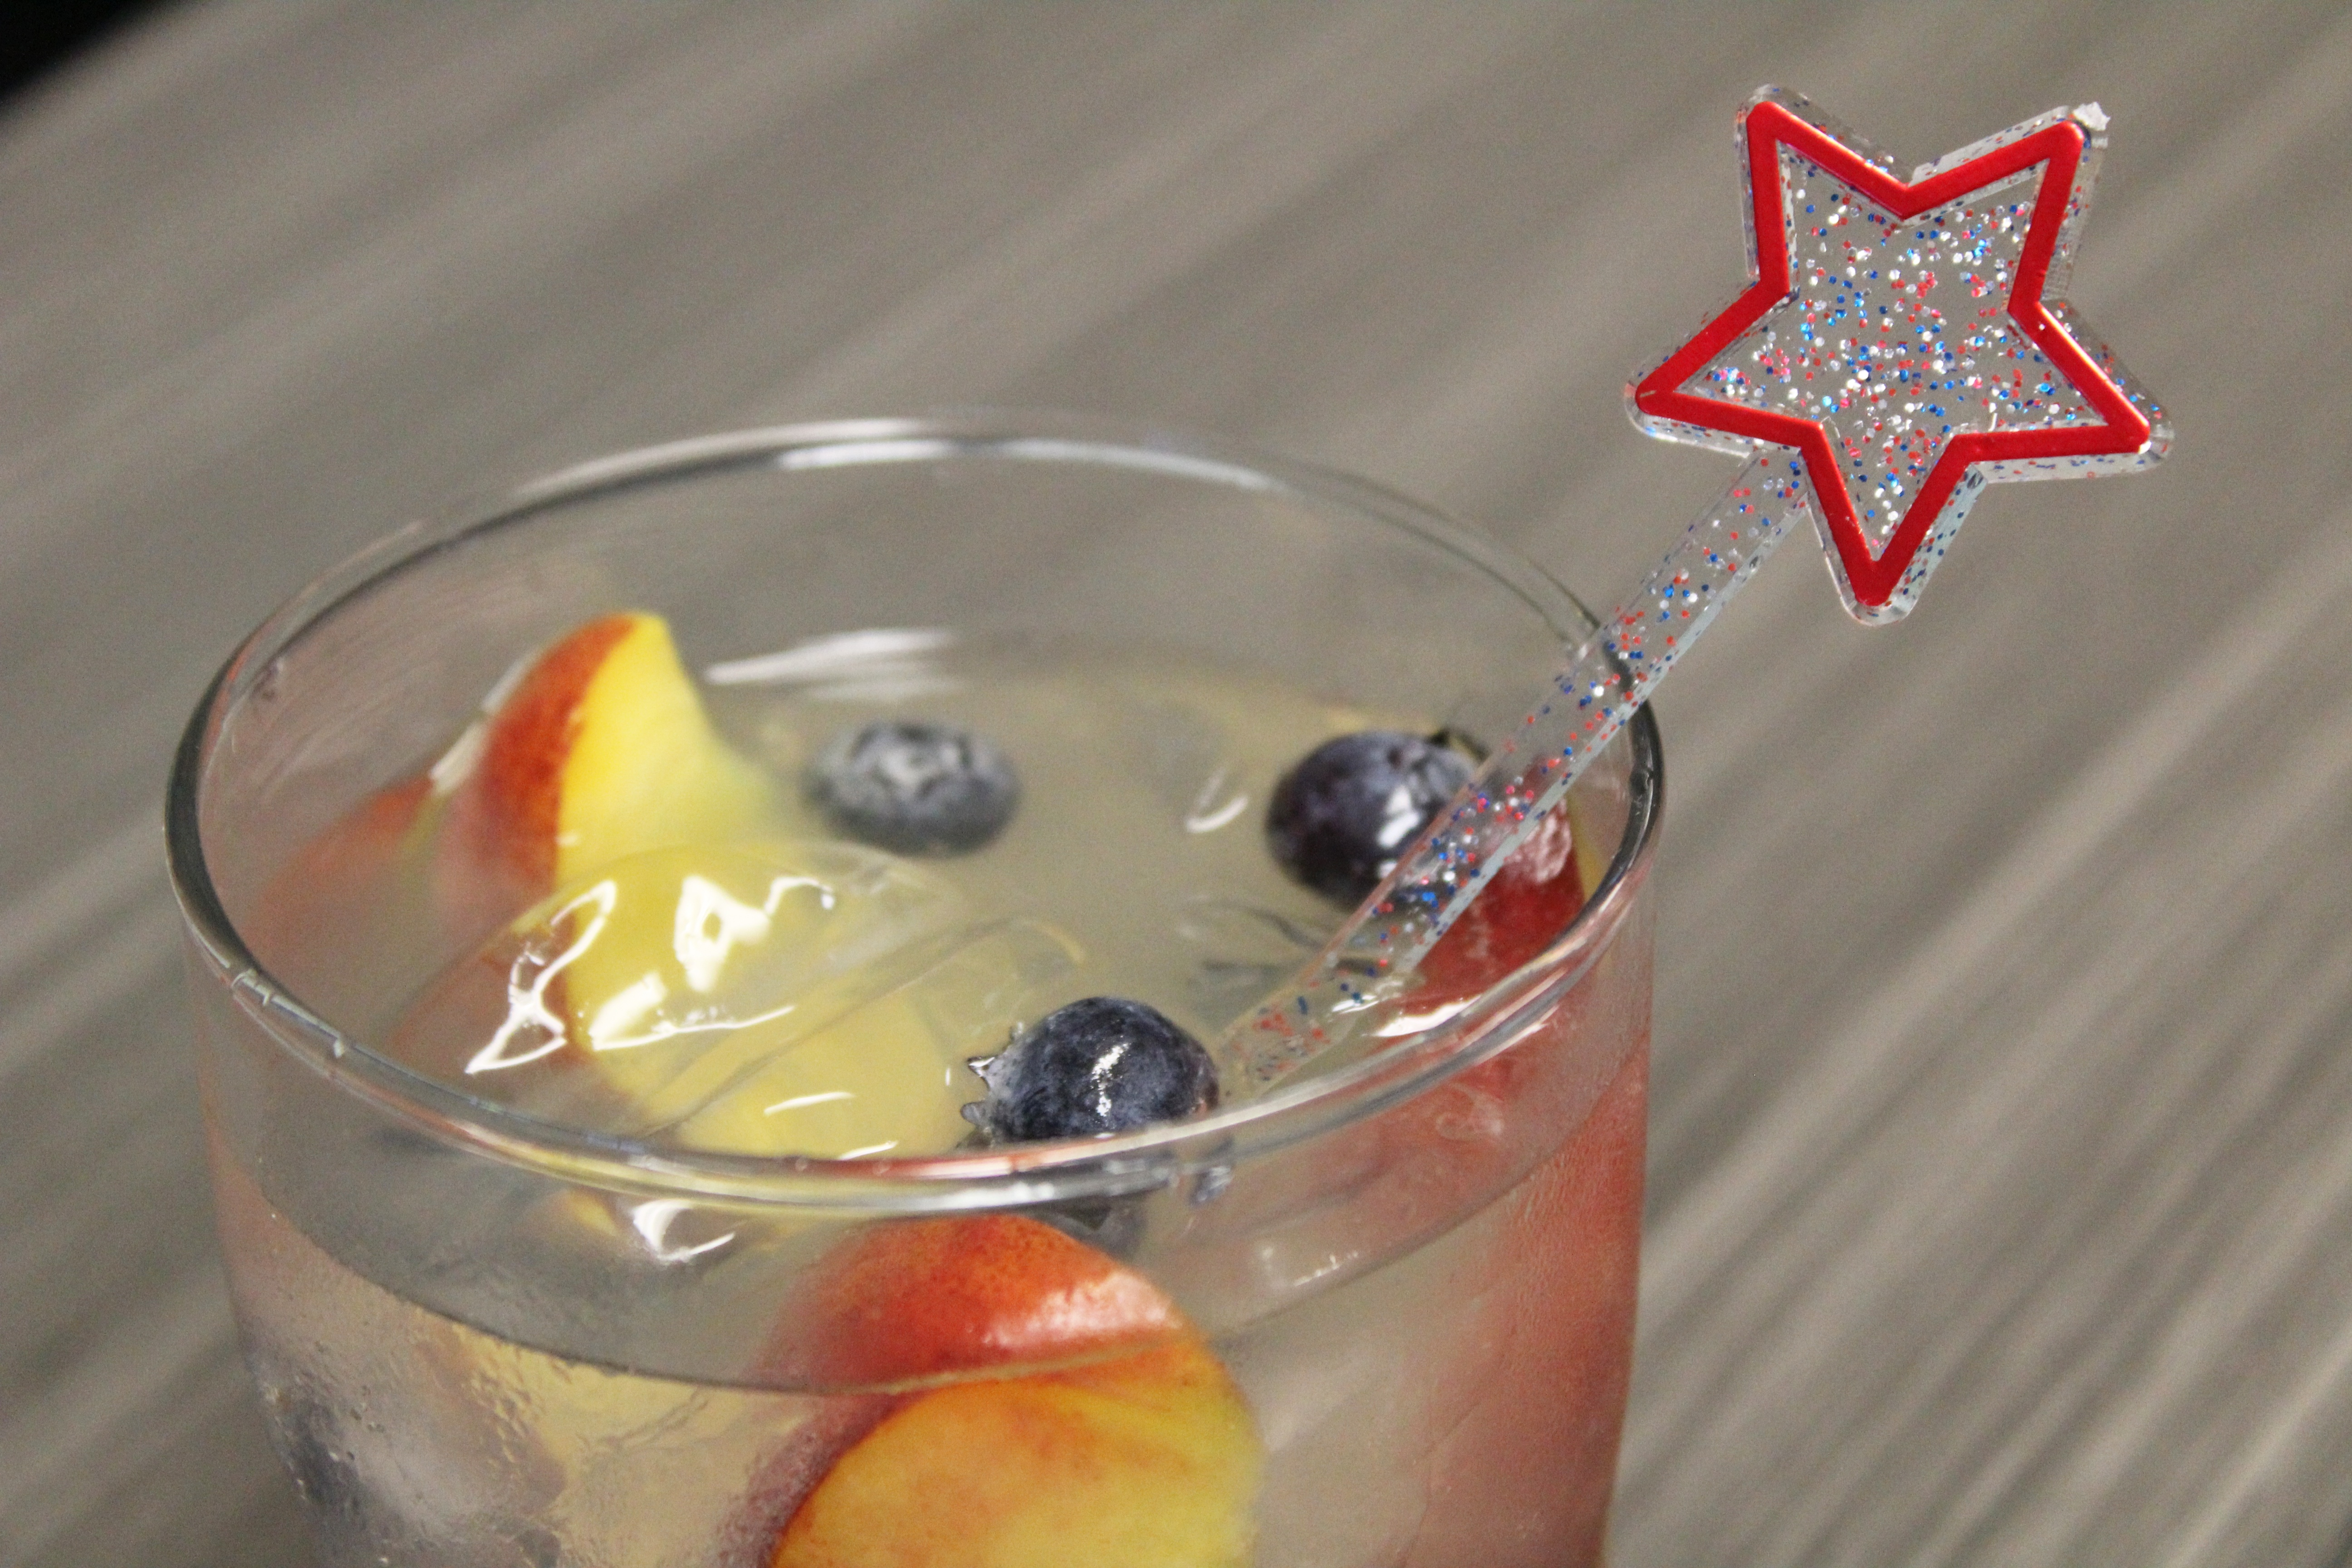 Shimmering Glitter-Infused Patriotic Star Stirrers For 4th of July!